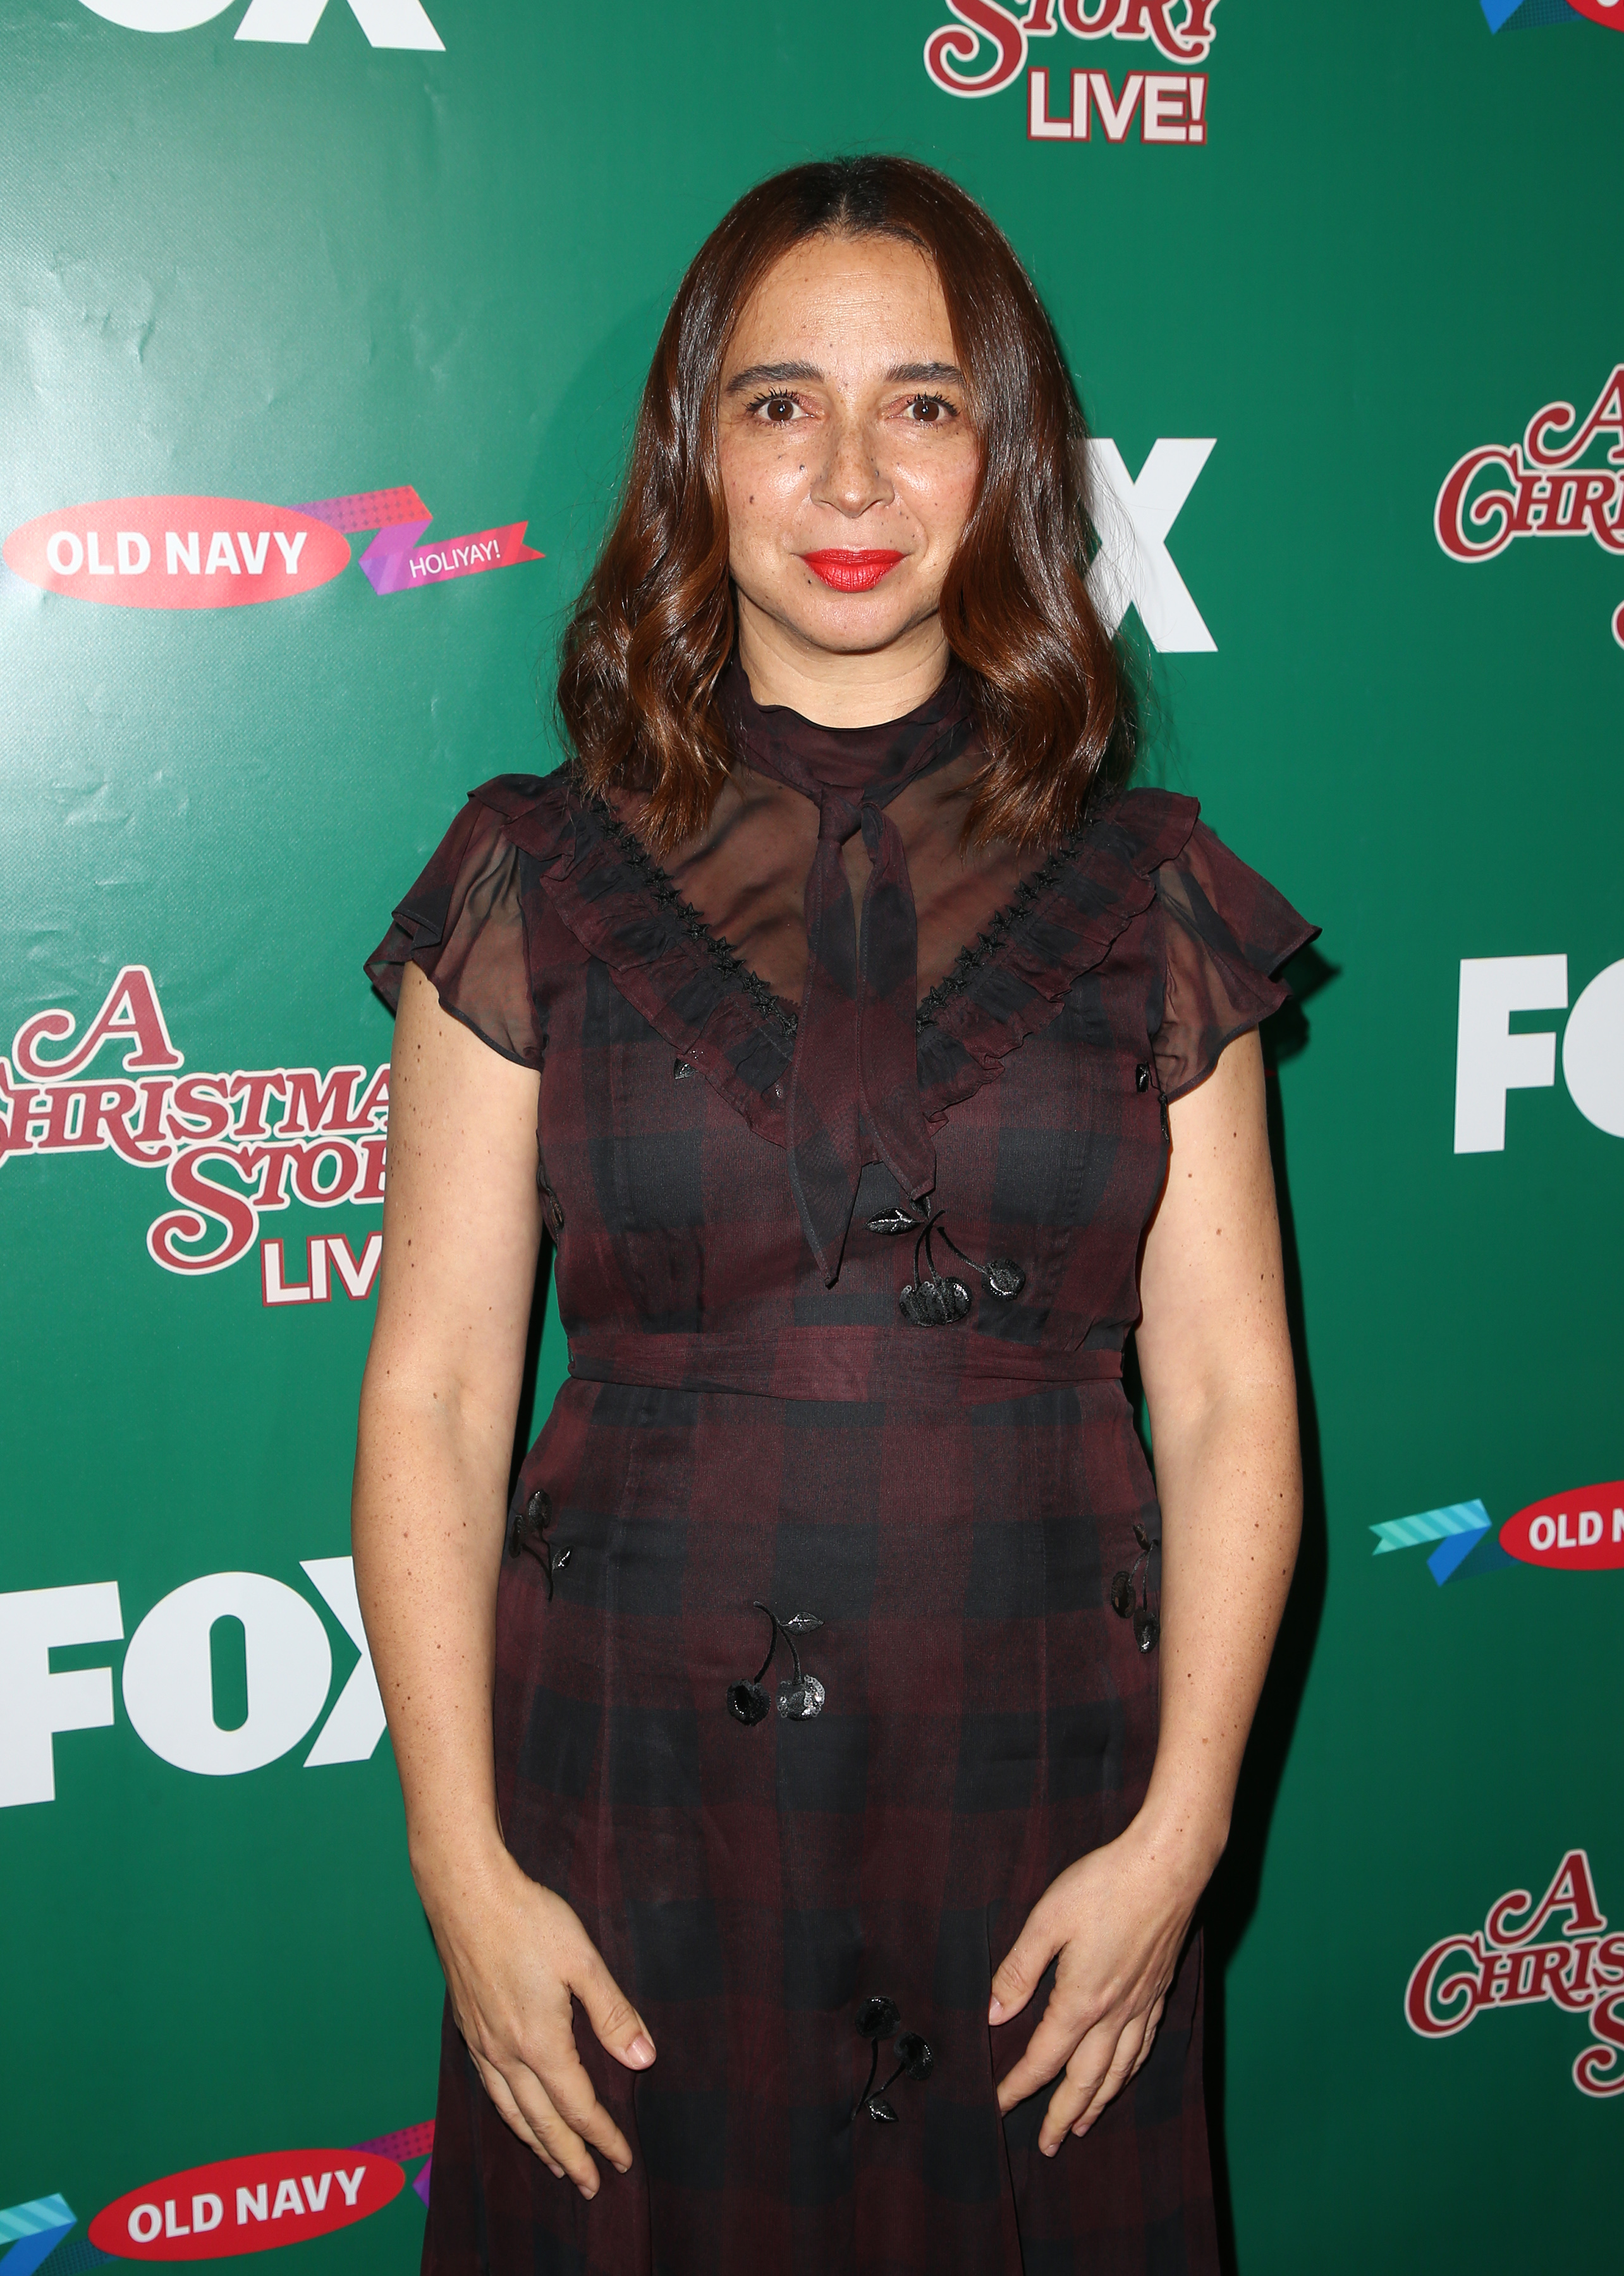 FOX's 'A Christmas Story Live!' Lighting Event                                    Featuring: Maya Rudolph                  Where: Los Angeles, California, United States                  When: 24 Nov 2017                  Credit: FayesVision/WENN.com